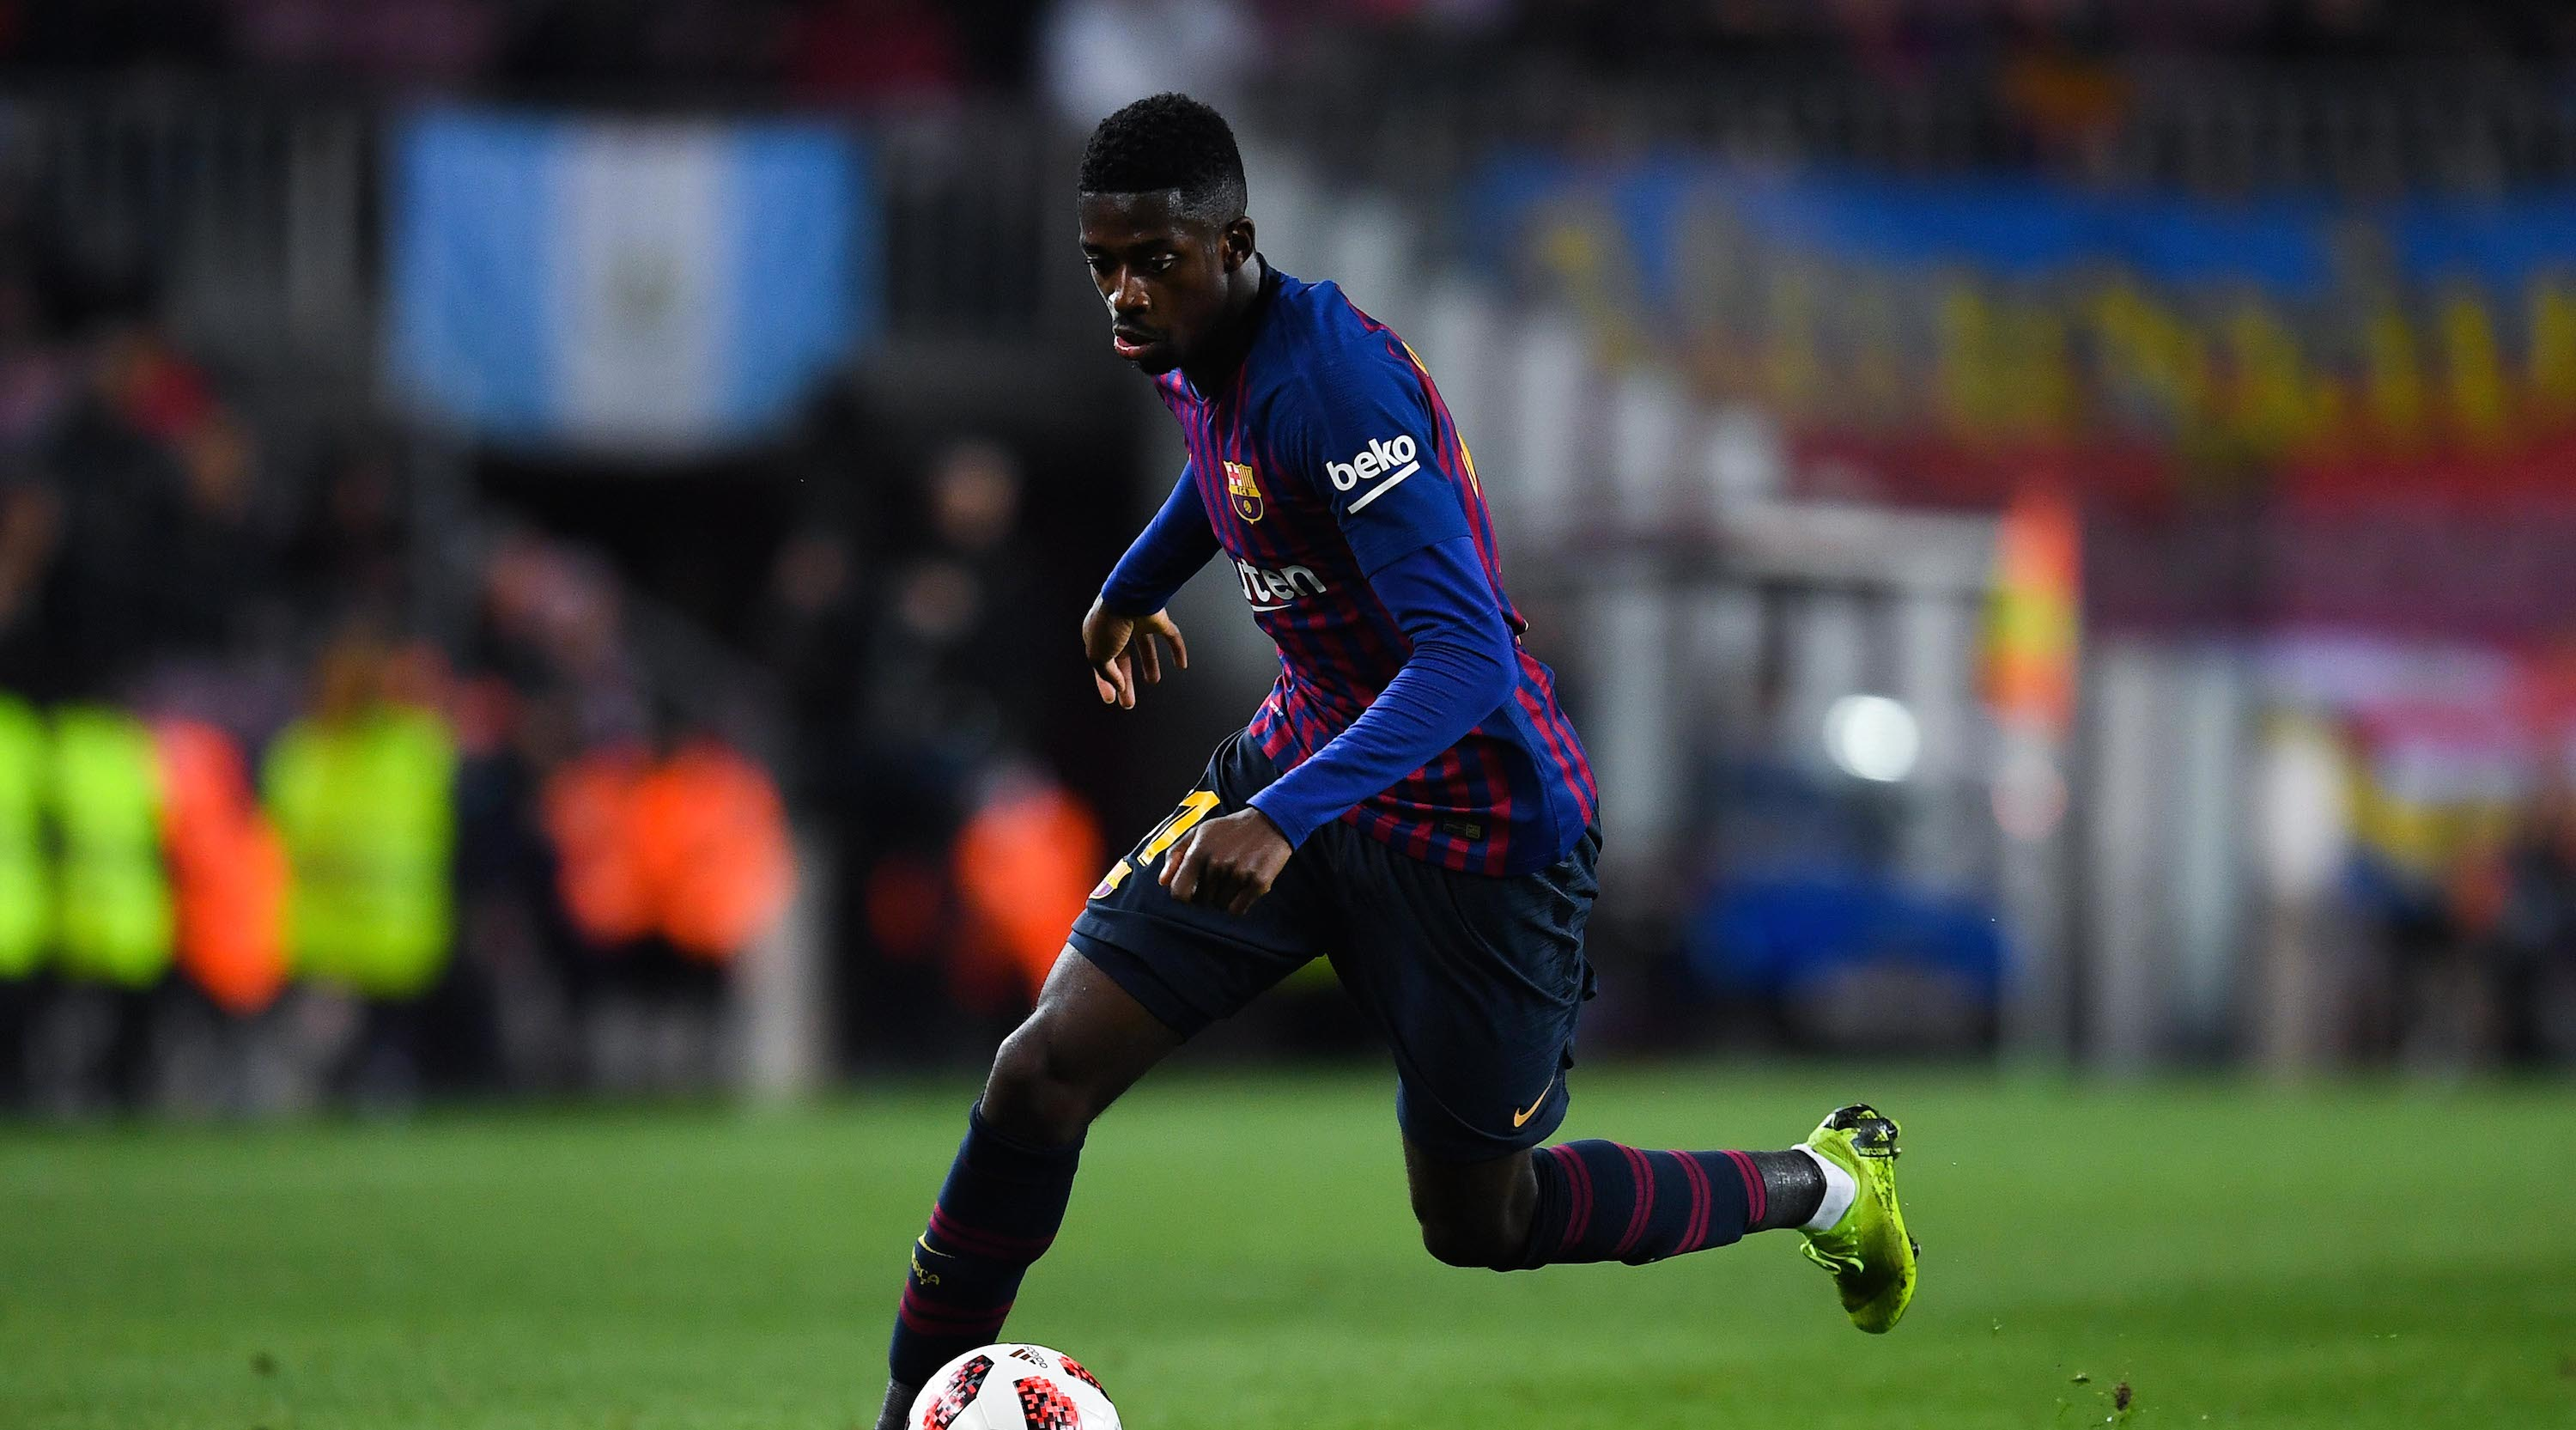 Ousmane Dembele of FC Barcelona runs with the ball during the Copa del Rey Round of 16 match between FC Barcelona and Levante at Camp Nou on January 17, 2019 in Barcelona, Spain. (Photo by David Ramos/Getty Images)